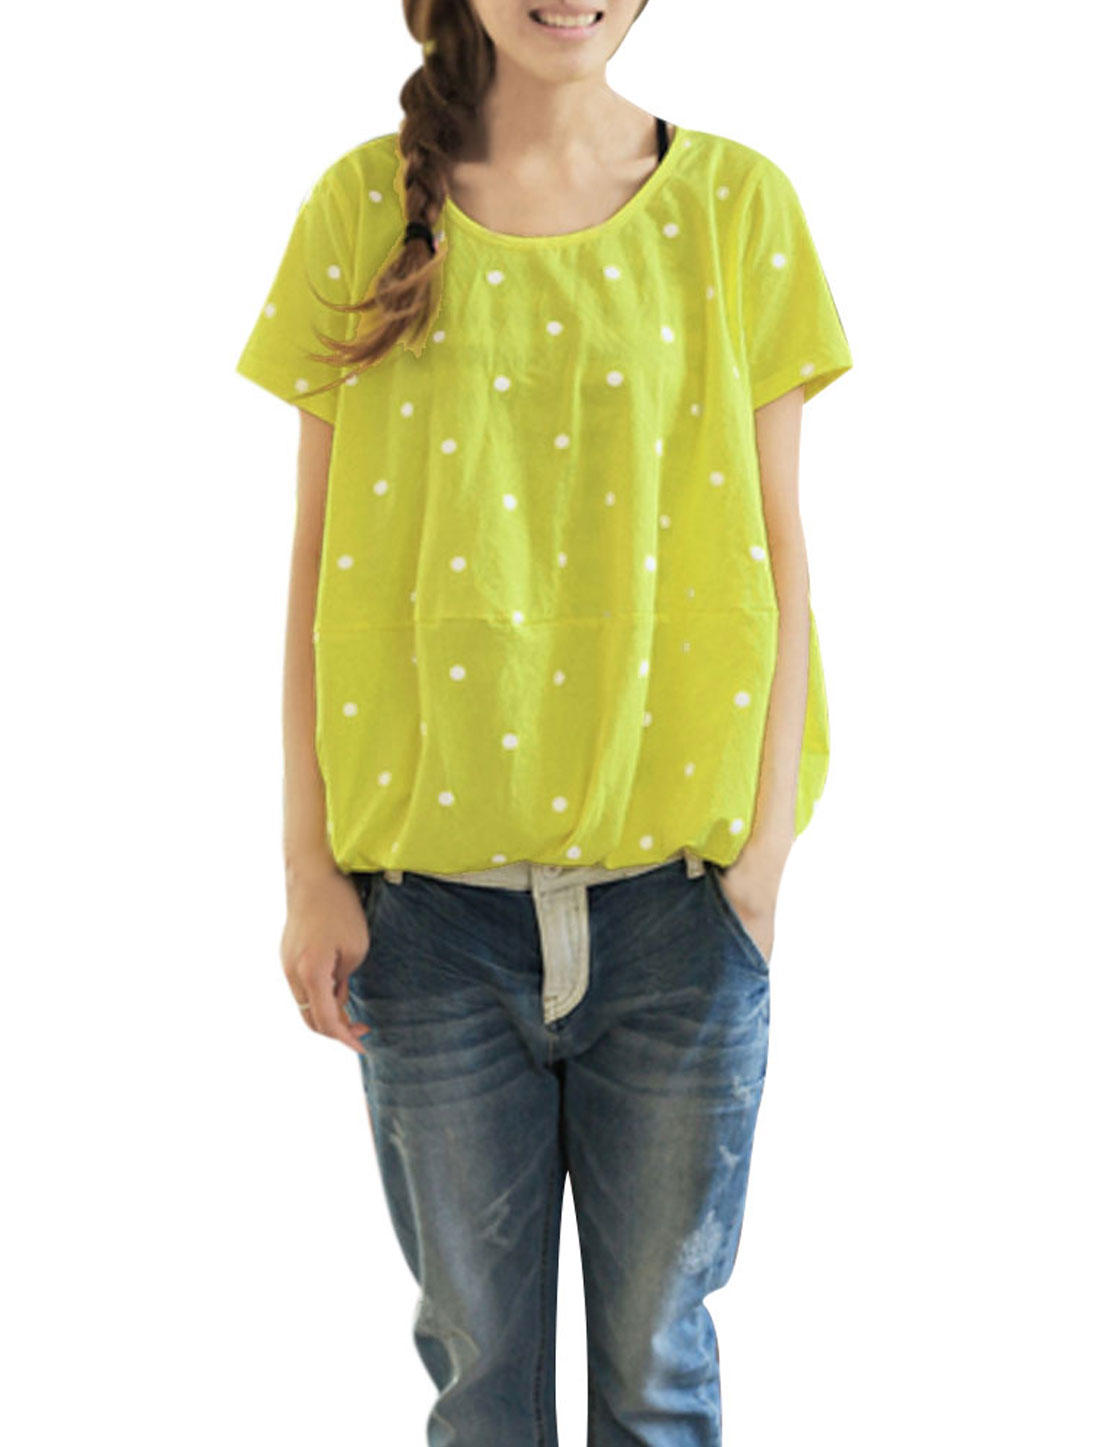 Lady Casual Short Sleeve Dots Prints Blouse Lime Yellow S